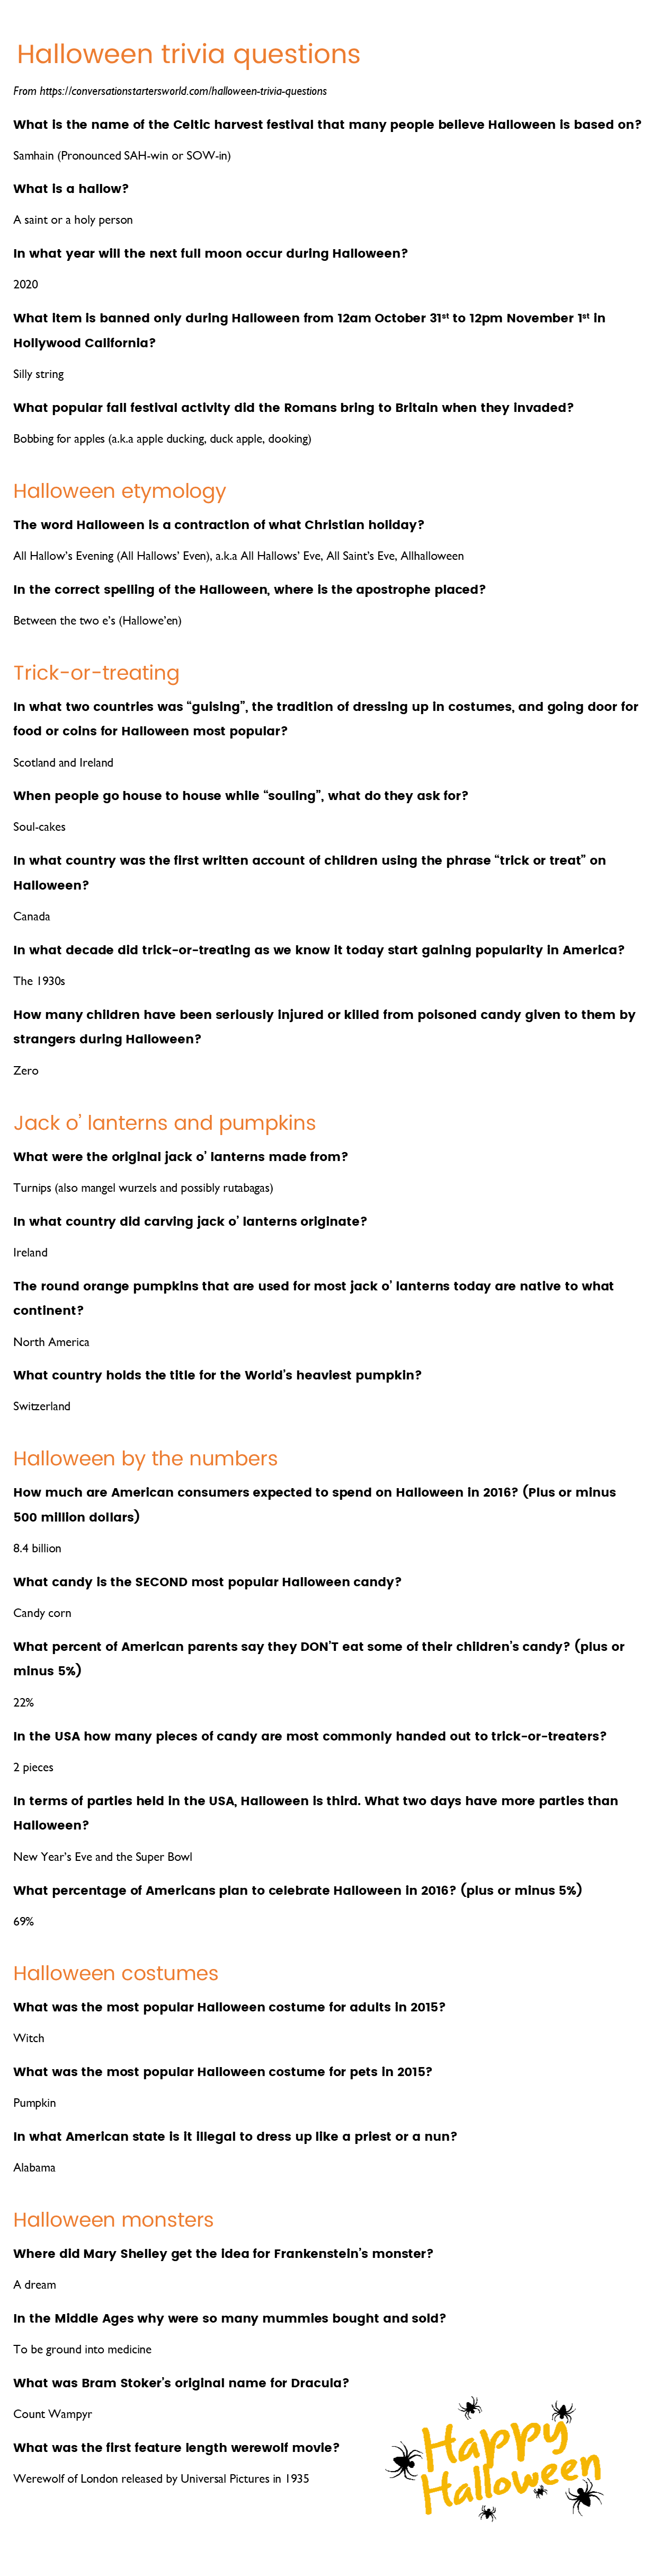 halloween trivia questions and answers list - Halloween Monster Trivia